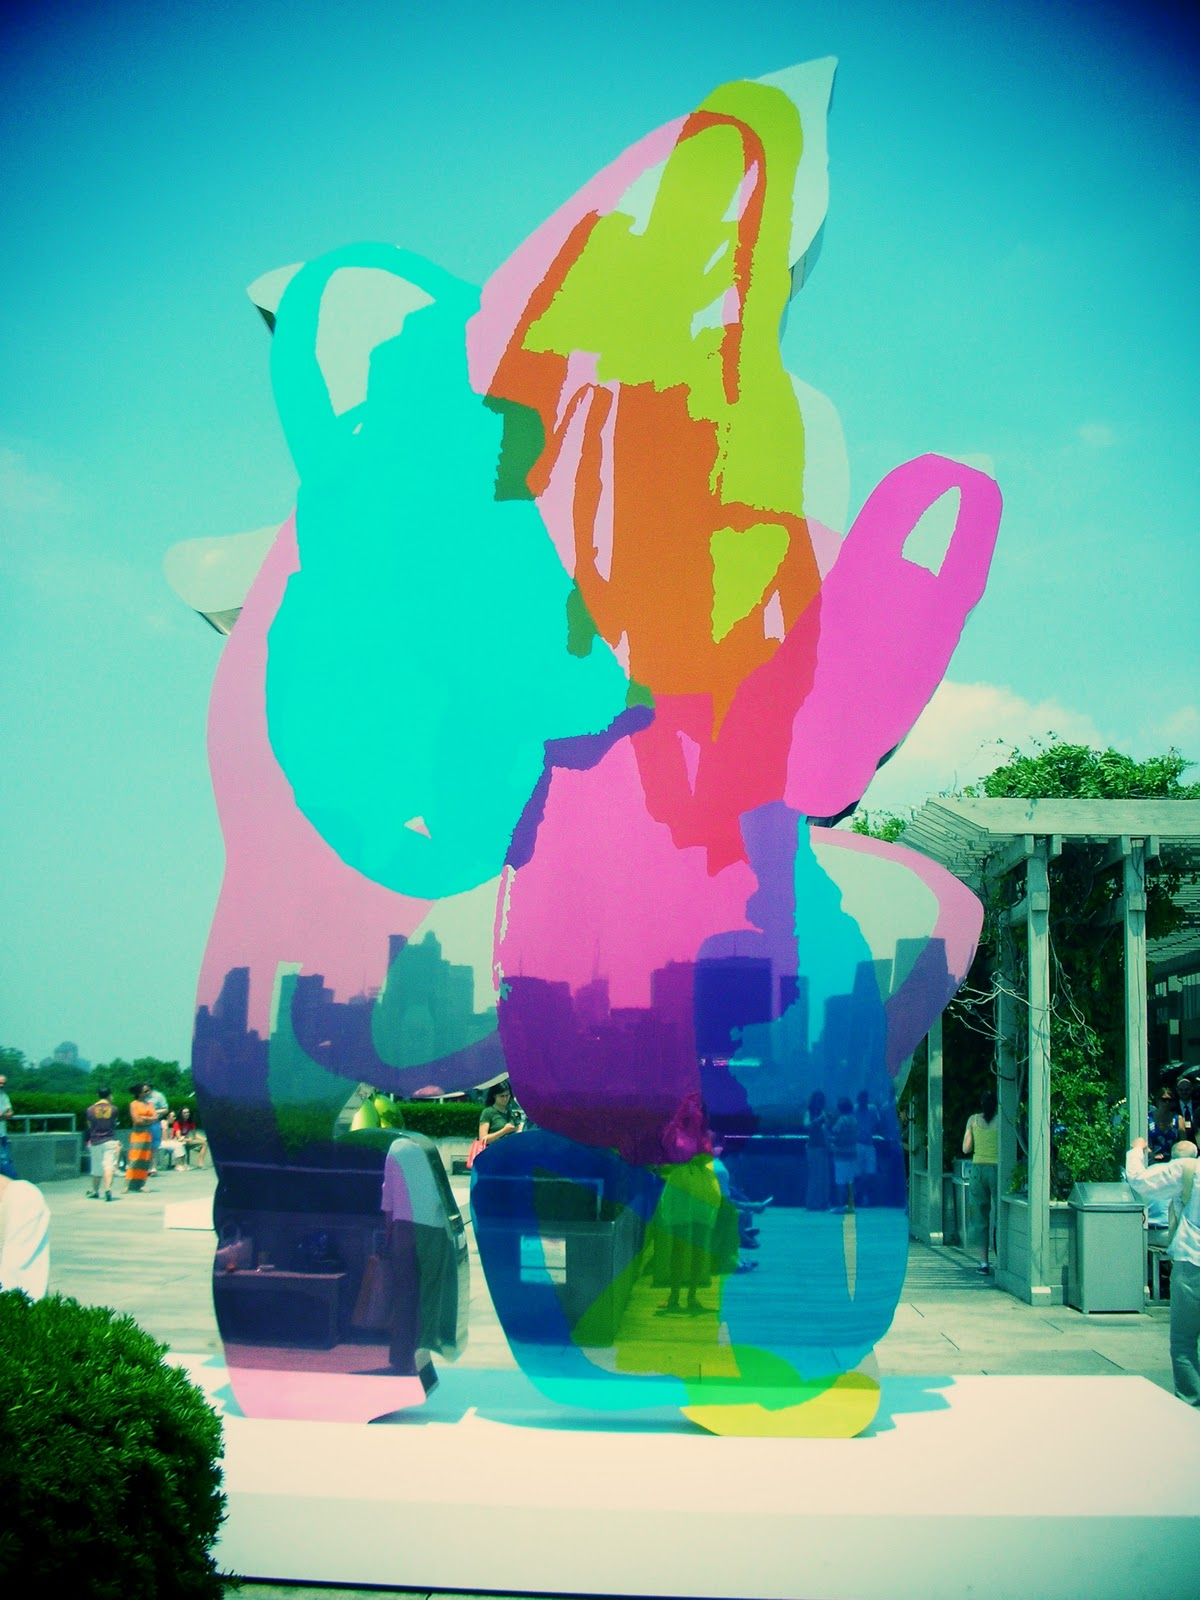 Coloring book by jeff koons - Coloring Book At Met